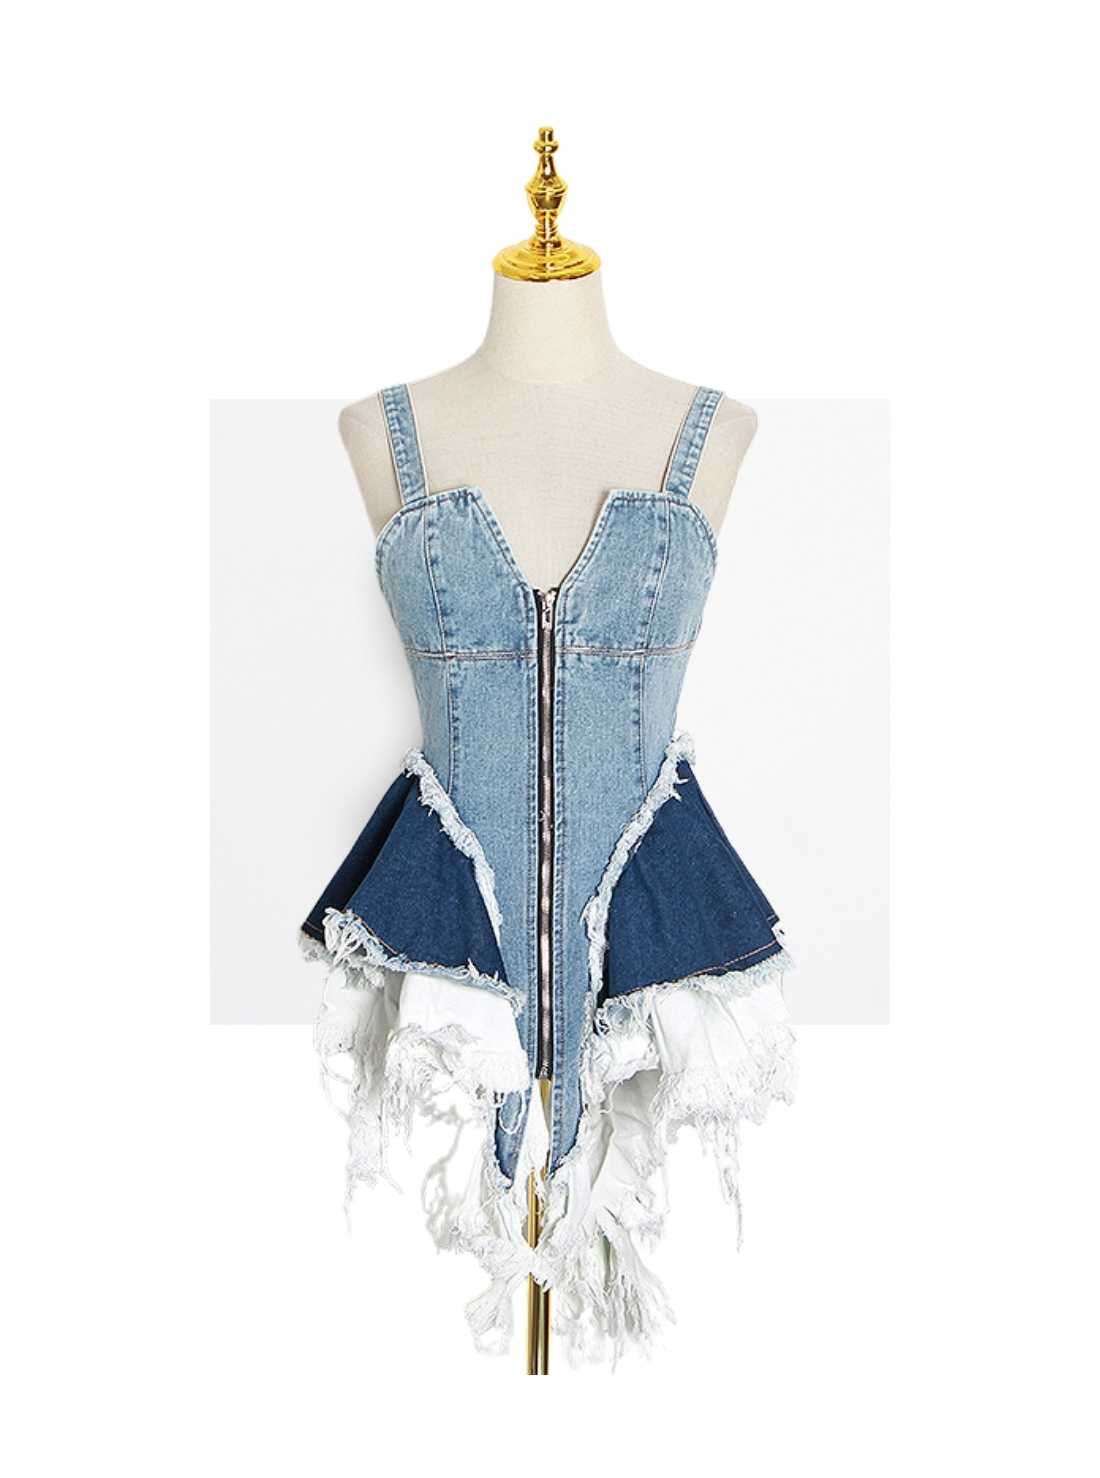 2021 Ripped Blue One-Piece Jean Skirt